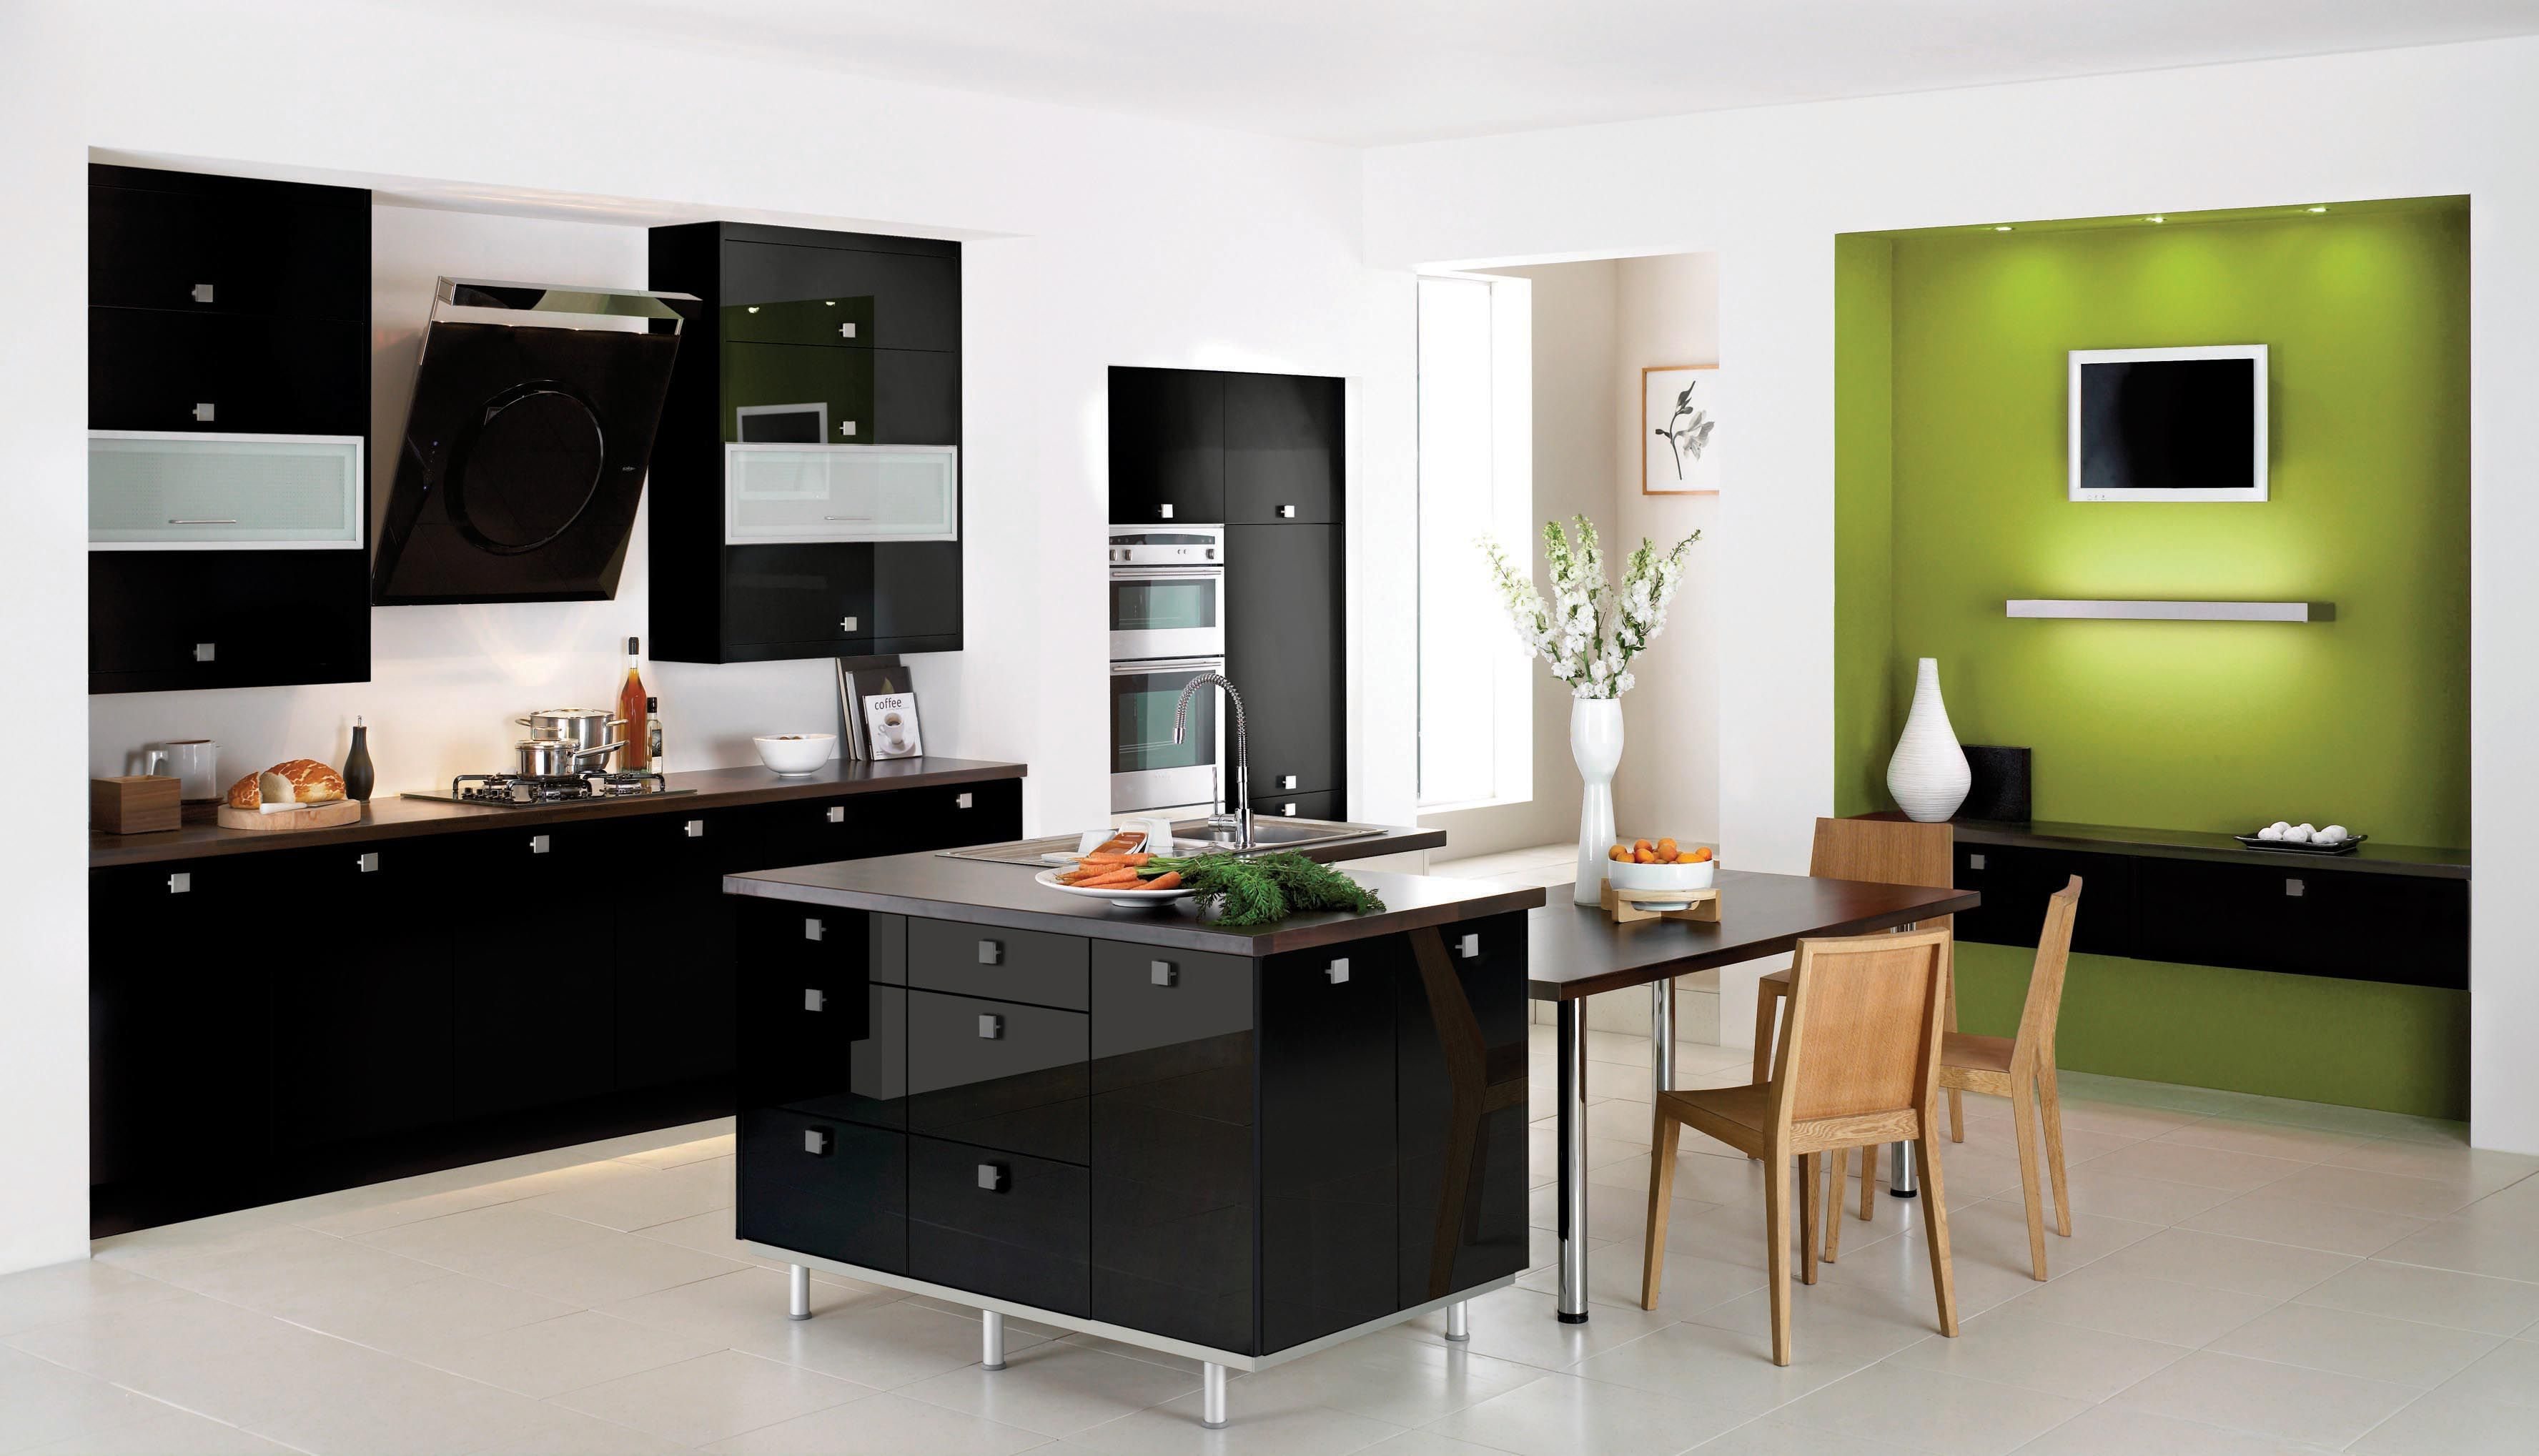 Contemporary Kitchen Design Pictures & Photos  Kitchen Design Classy Design Of Kitchens Review